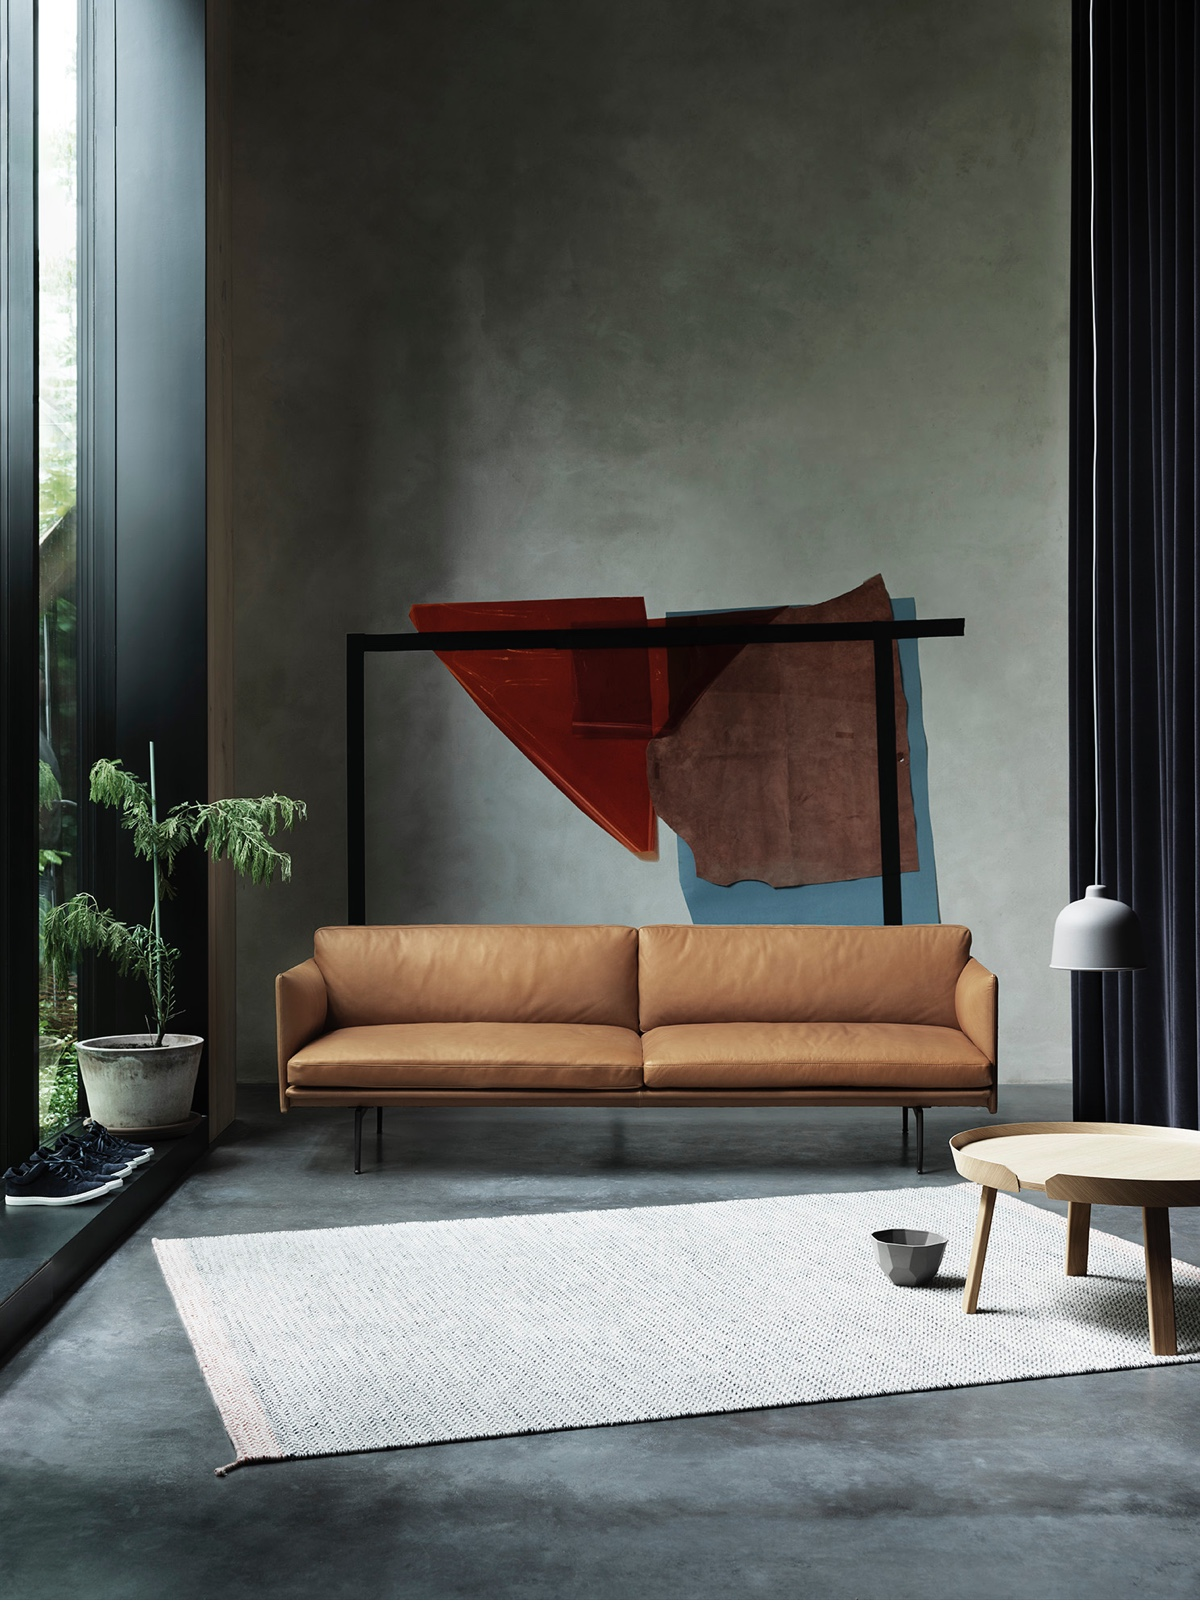 OUTLINE sofa by Anderssen & Voll for Muuto.